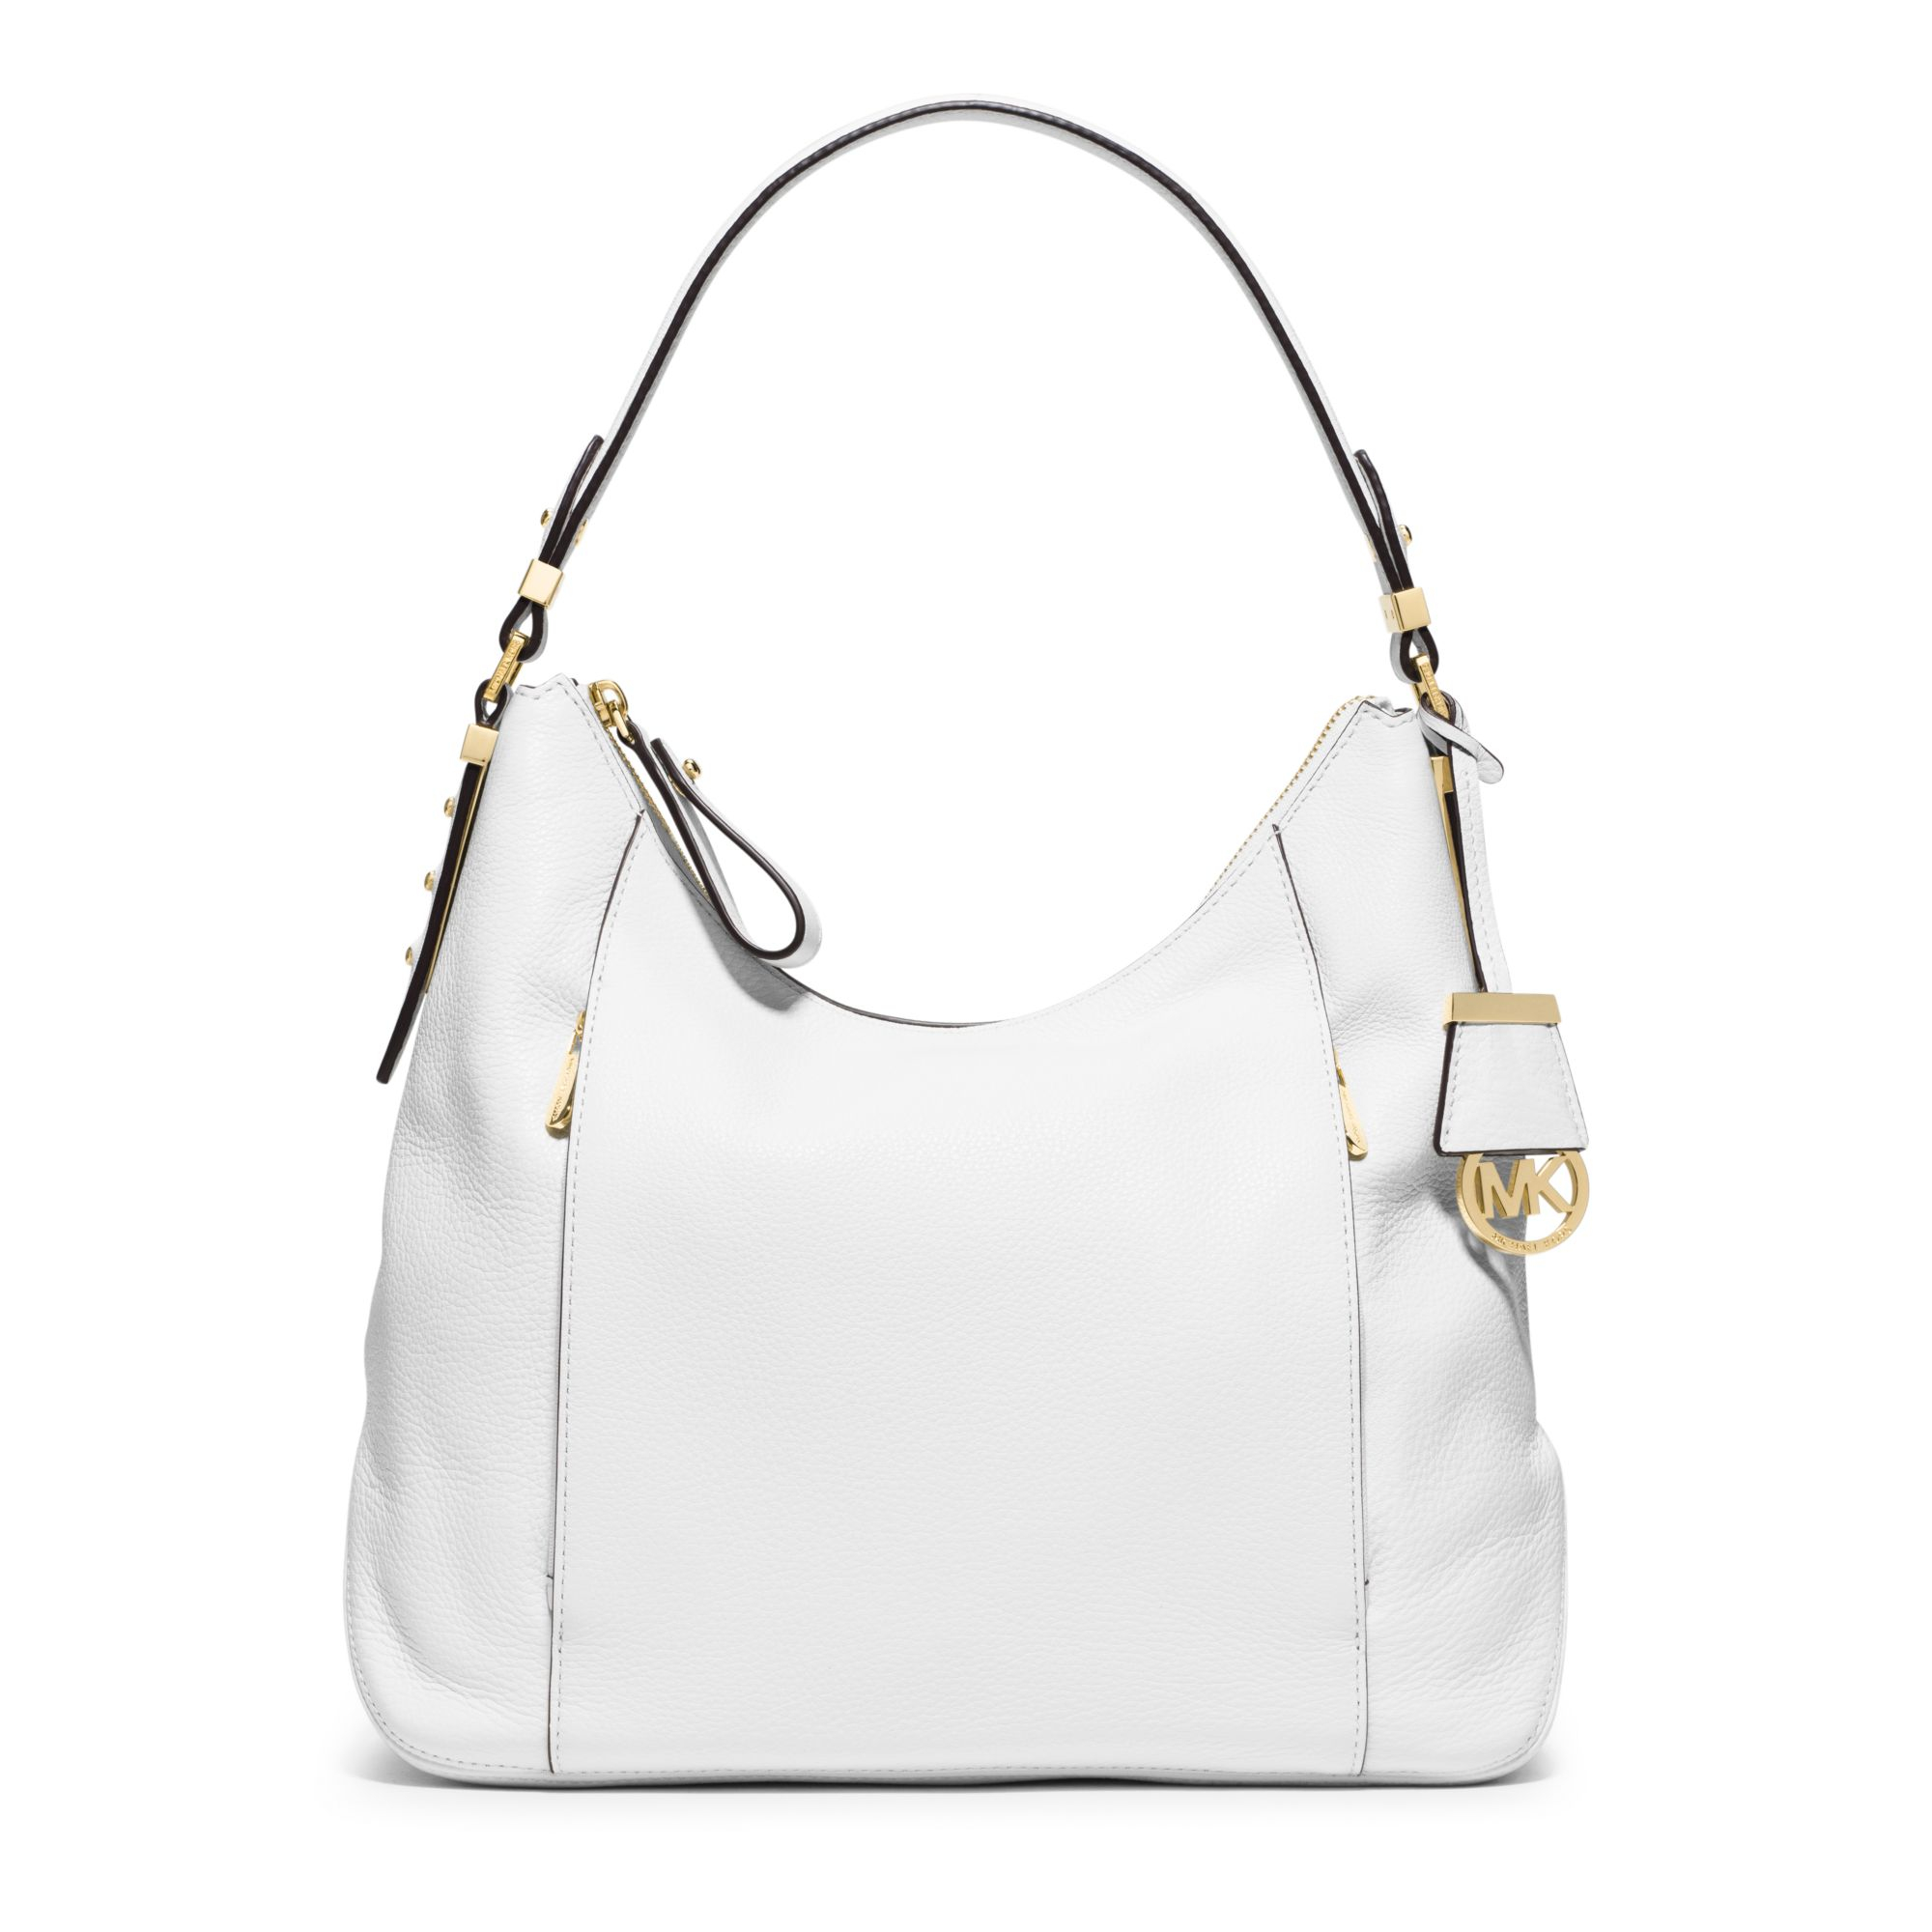 Purchase your next Big White bag from Zazzle. Check out our backpacks, clutches, & more or create your own! Search for products. Big White Bags. Shopping Bags. Wallets. Handbags. Backpacks. Cosmetic & Toiletry Bags. Big White Bags. 1, results. Category: Bags. All Products Bags.